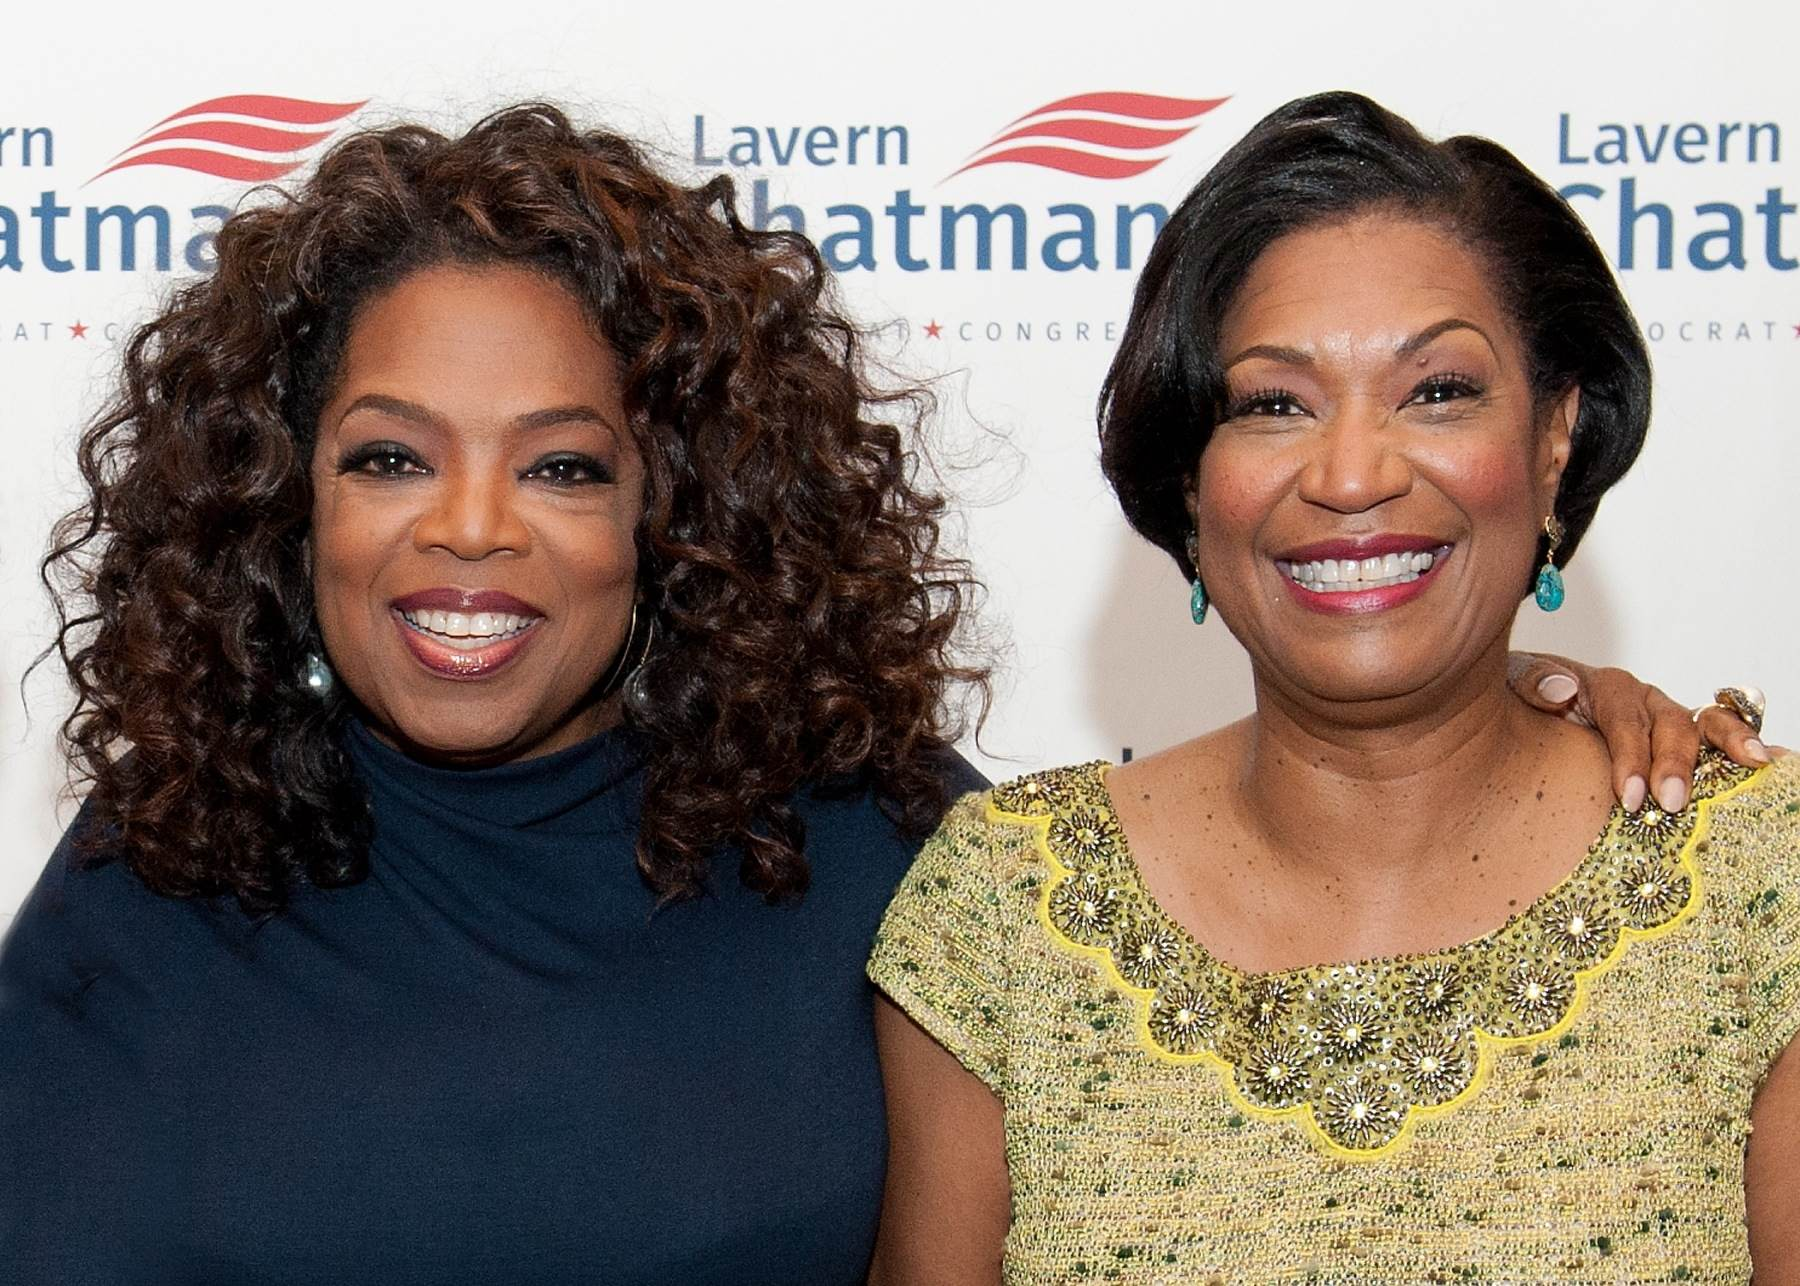 Lavern Chatman and Oprah